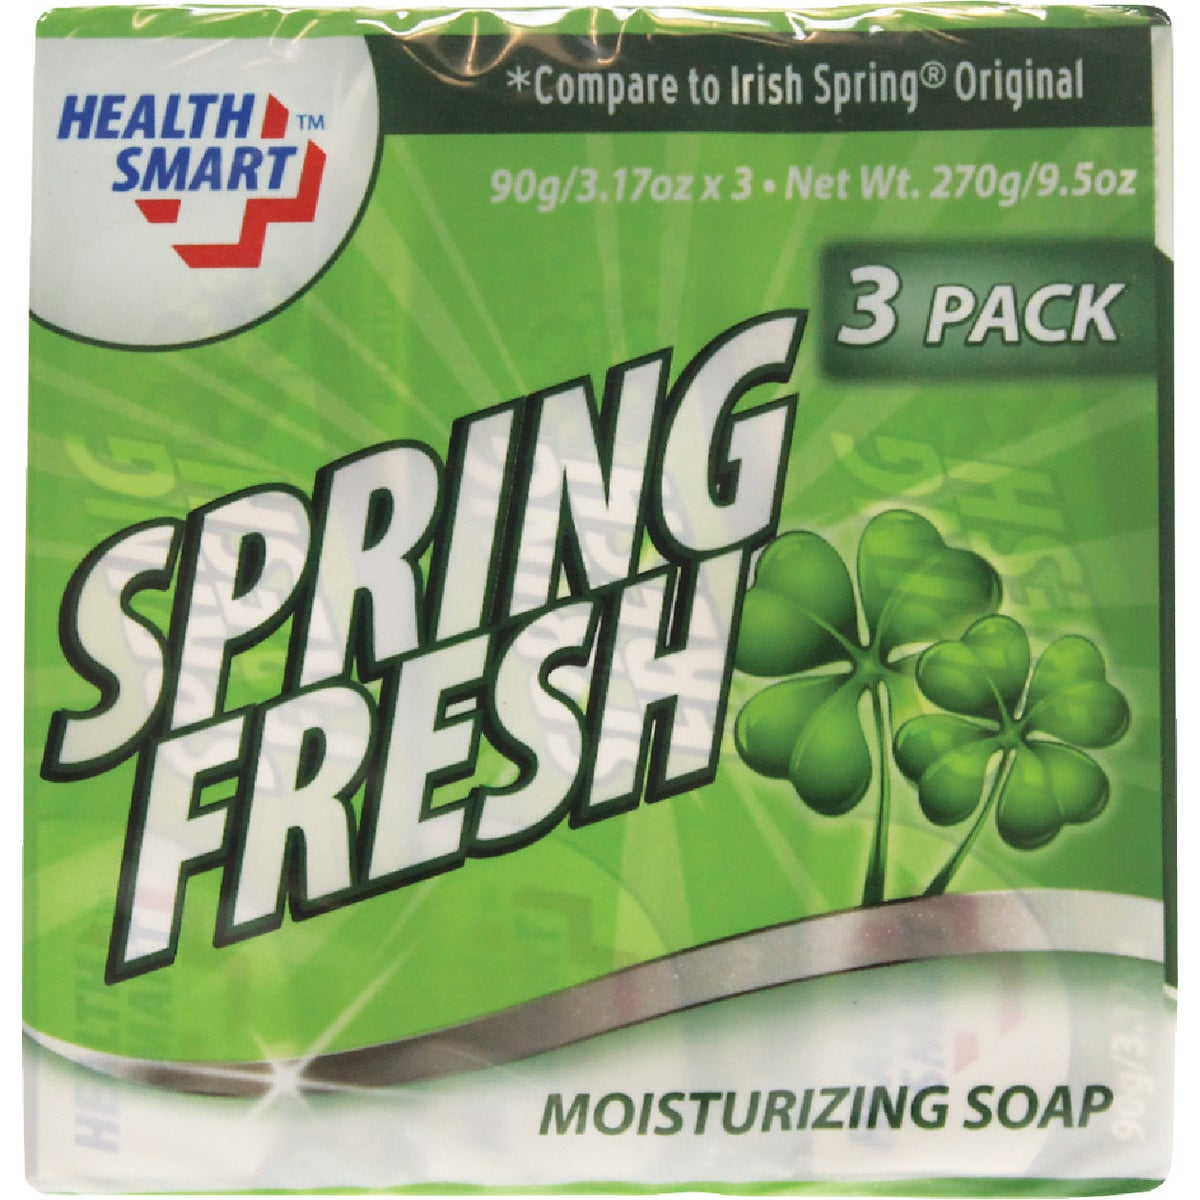 2PK ANTI-BACTERIAL SOAP - 92080 by Personal Care Prod